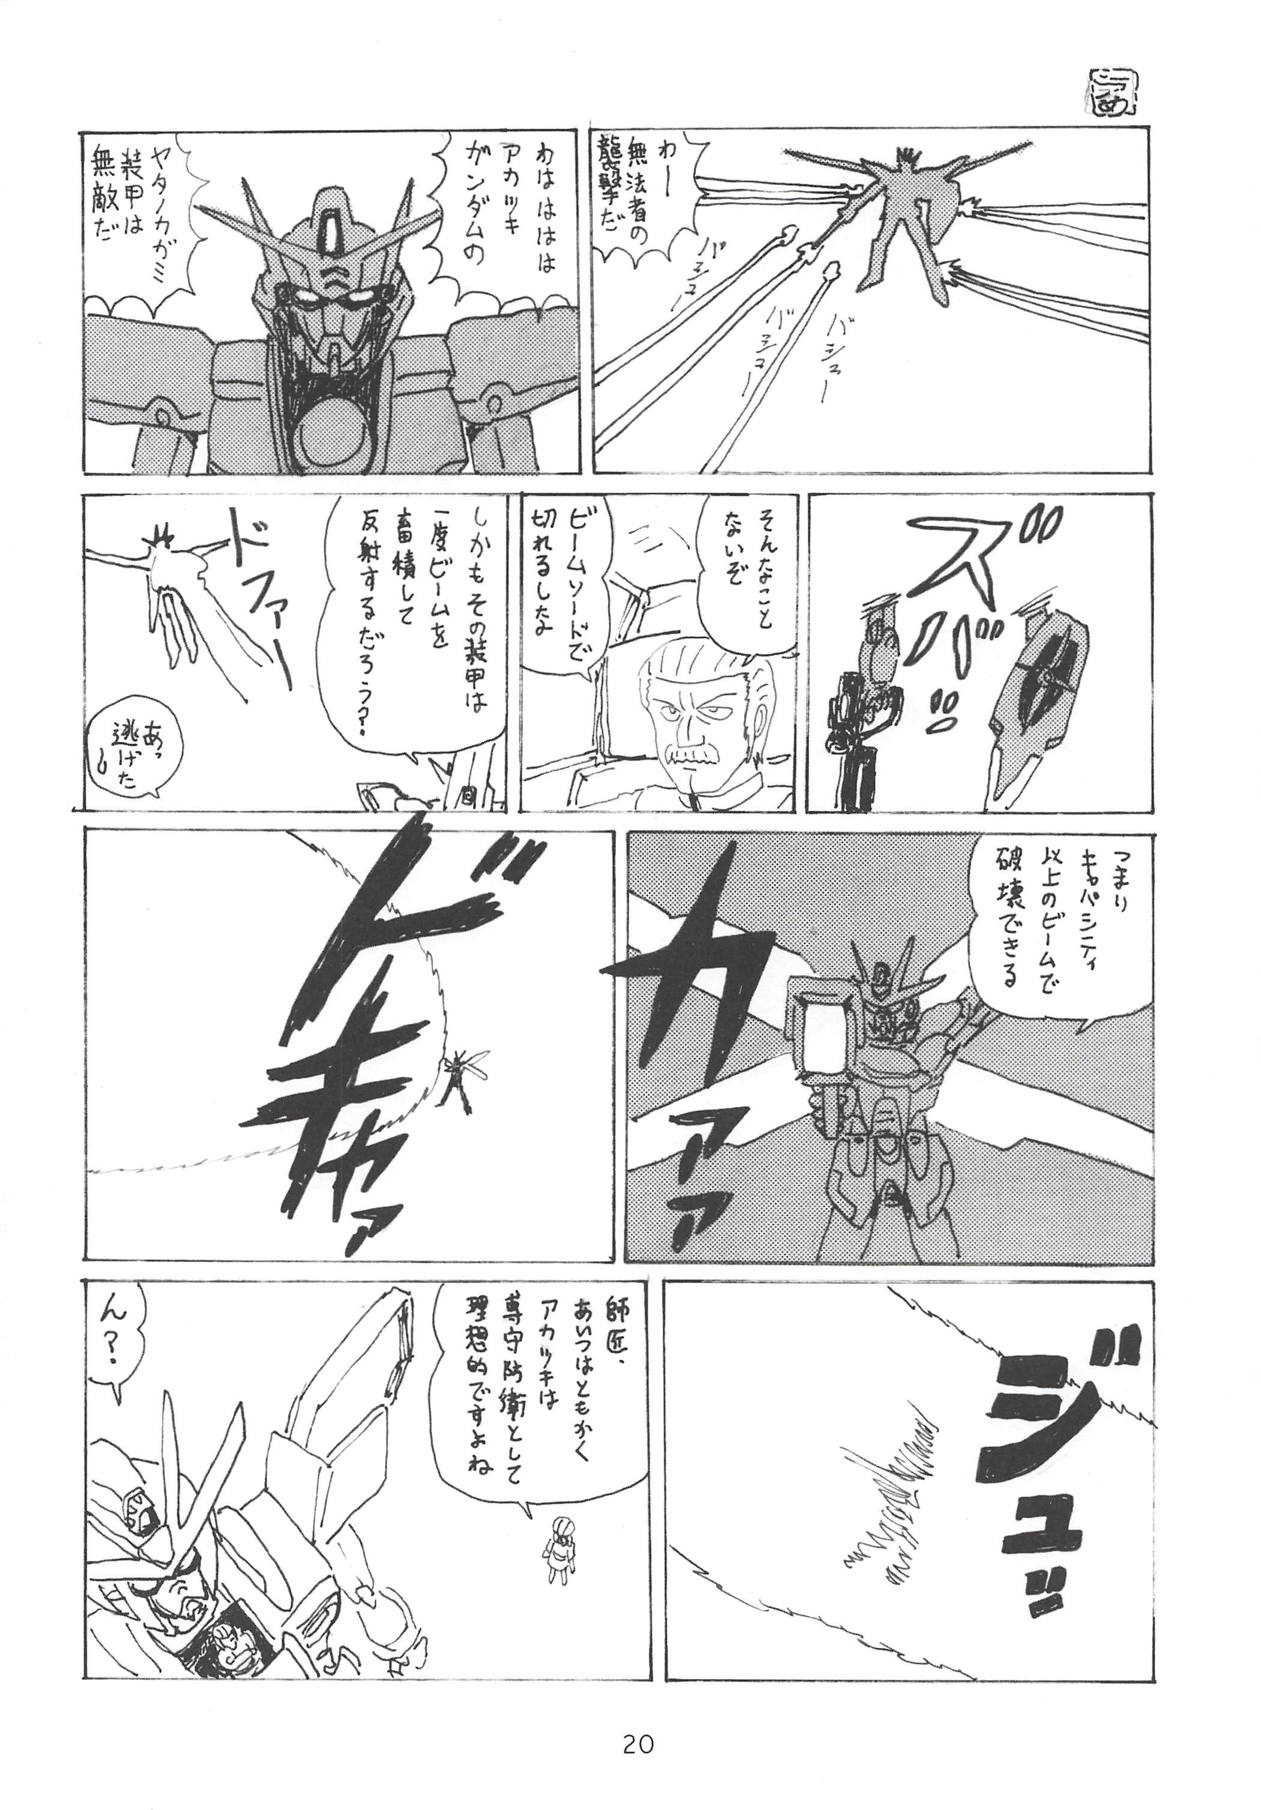 (COMIC1☆14) [Thirty Saver Street (Sawara Kazumitsu, Maki Hideto)] Diver's High 2 (Gundam Build Divers) page 19